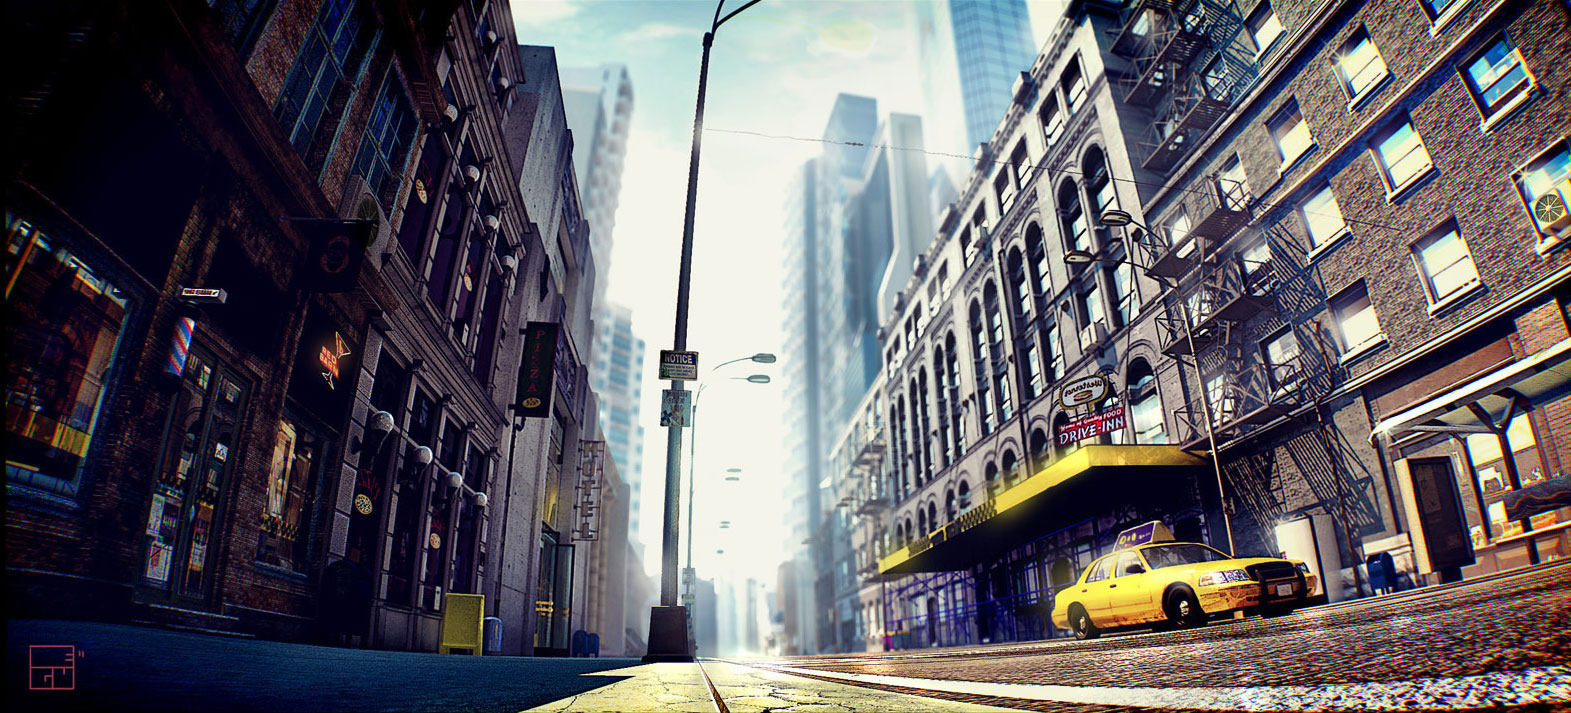 Bing 3d Wallpapers Ny Street Realistic 3d Render 3d Scenery